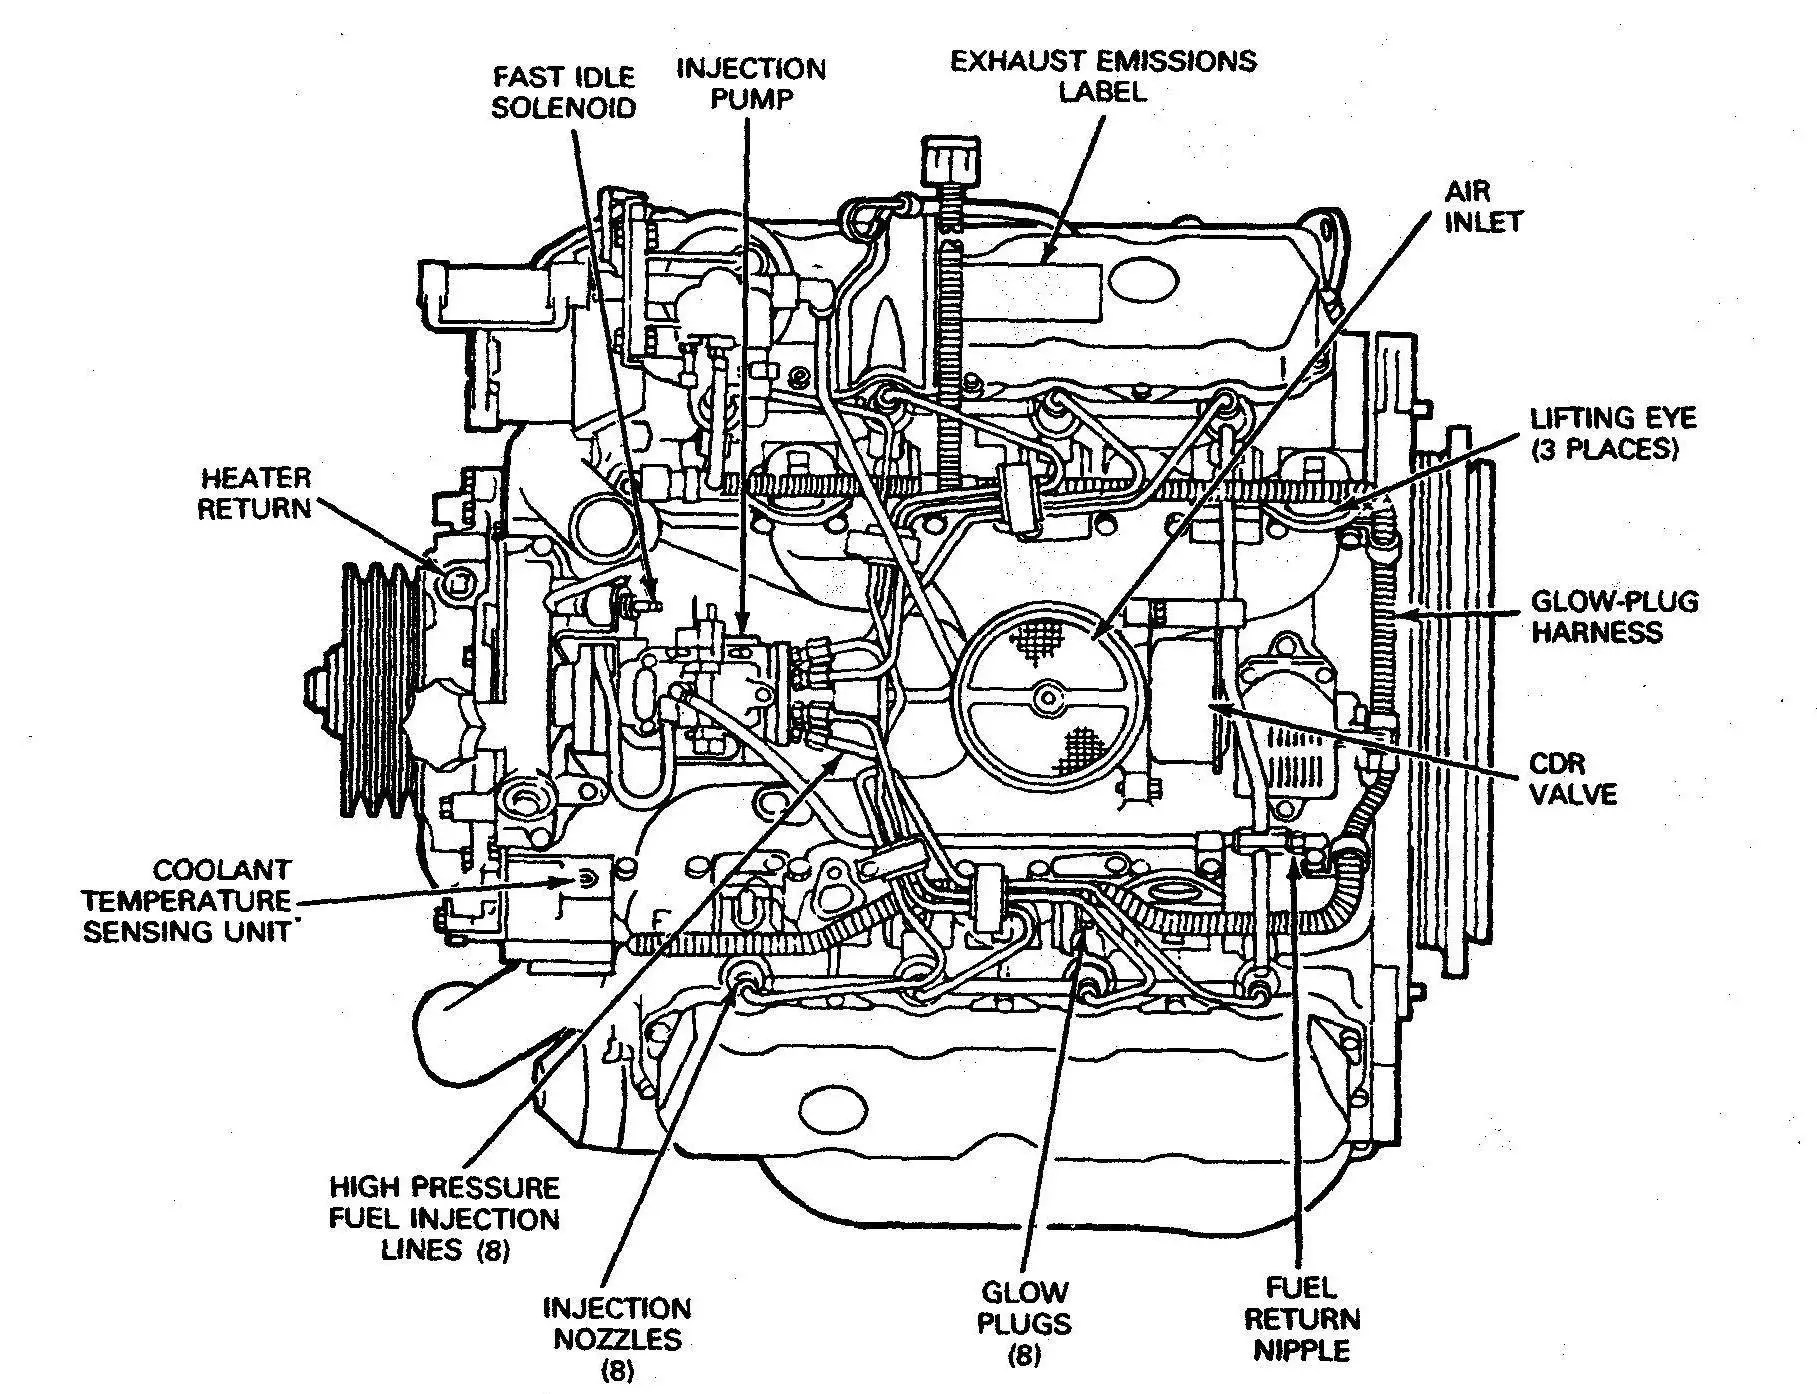 hight resolution of engine diagram 1989 ford 7 3l diesel